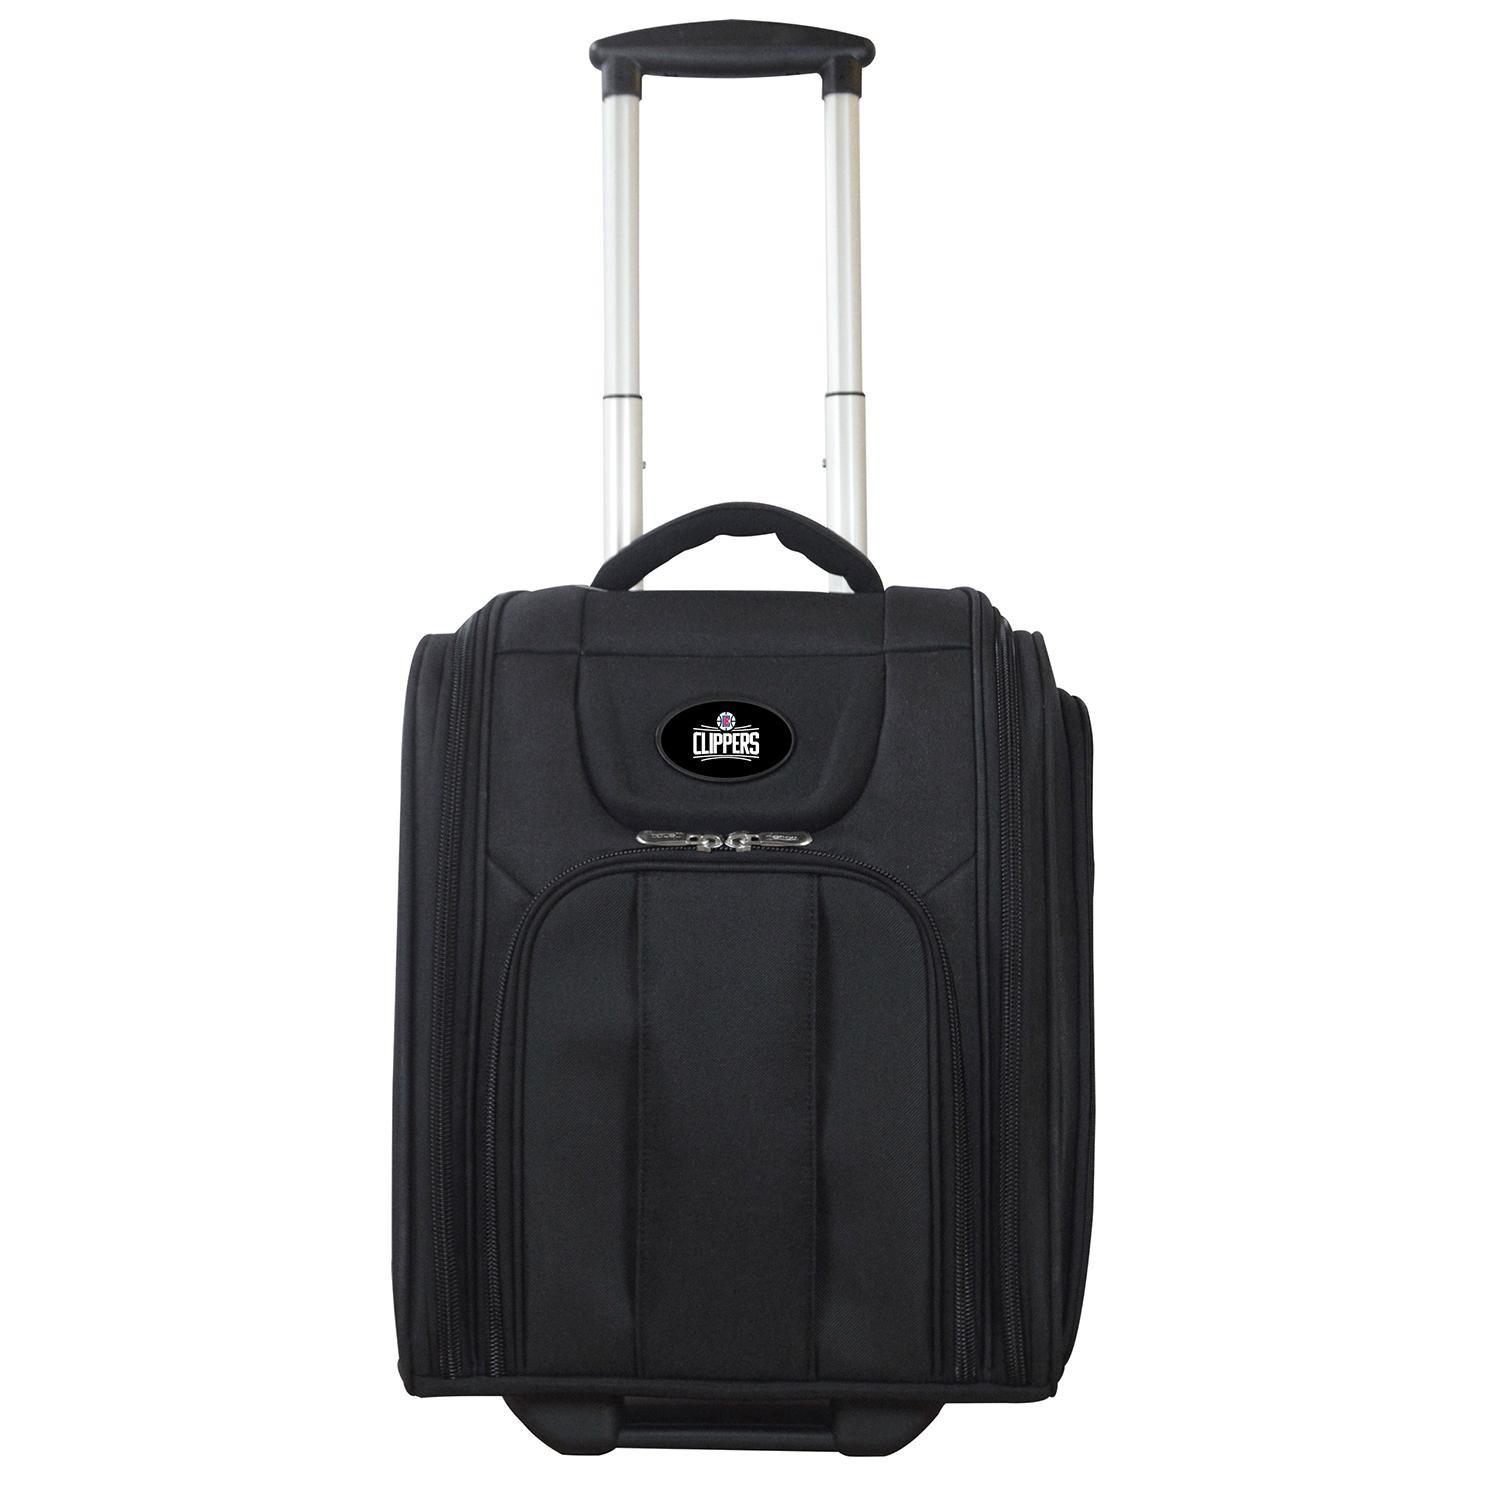 Los Angeles Clippers Business Tote laptop bag Luggage (Color: Black)